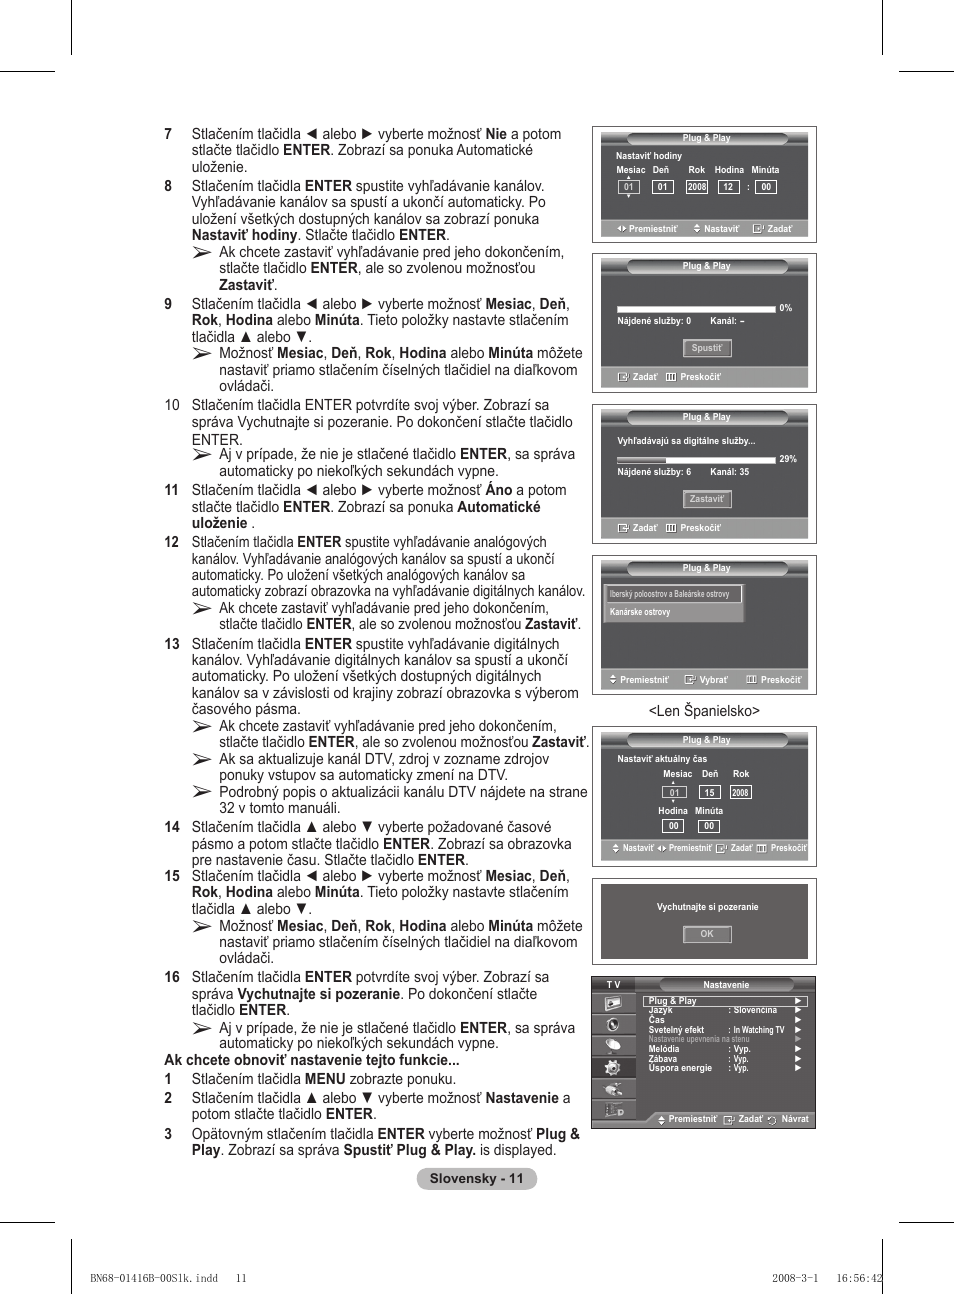 samsung wmn5090a user manual page 272 418 original mode also